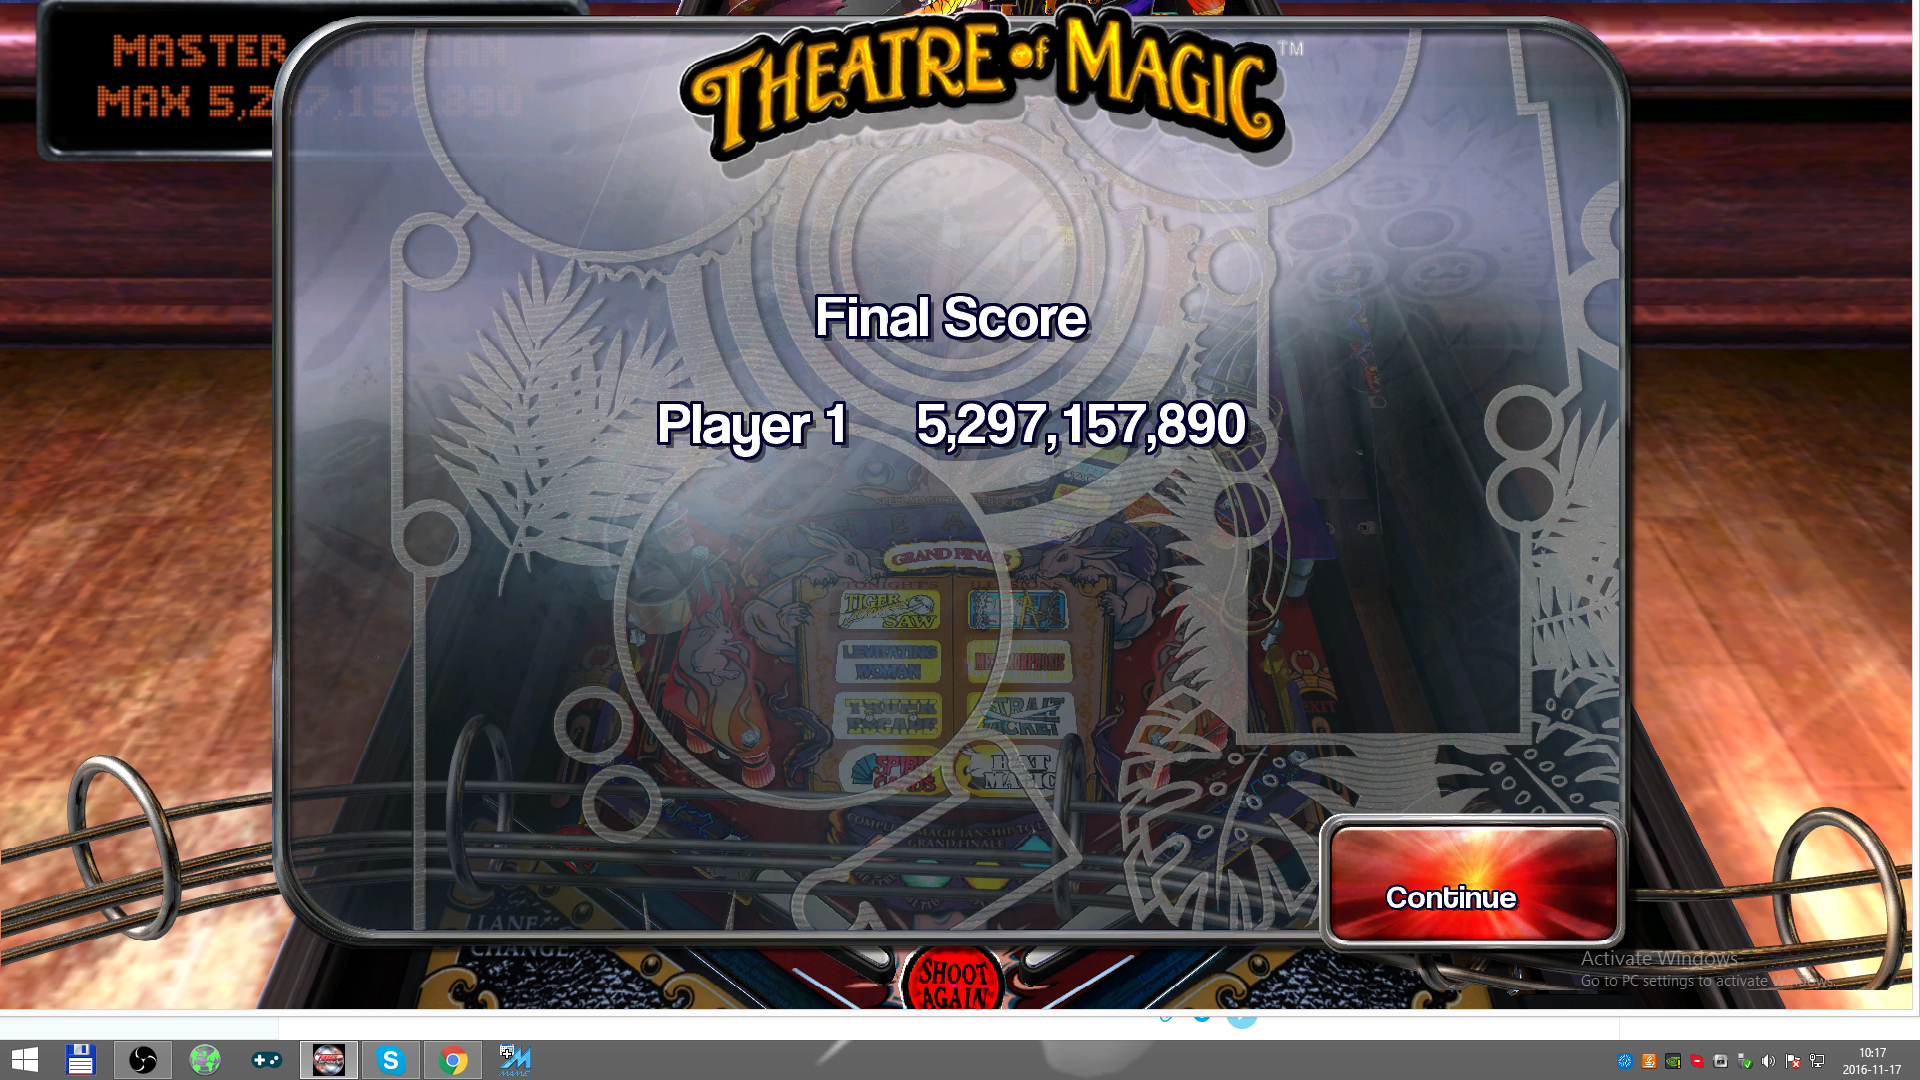 Pinball Arcade: Theatre of Magic 5,297,157,890 points